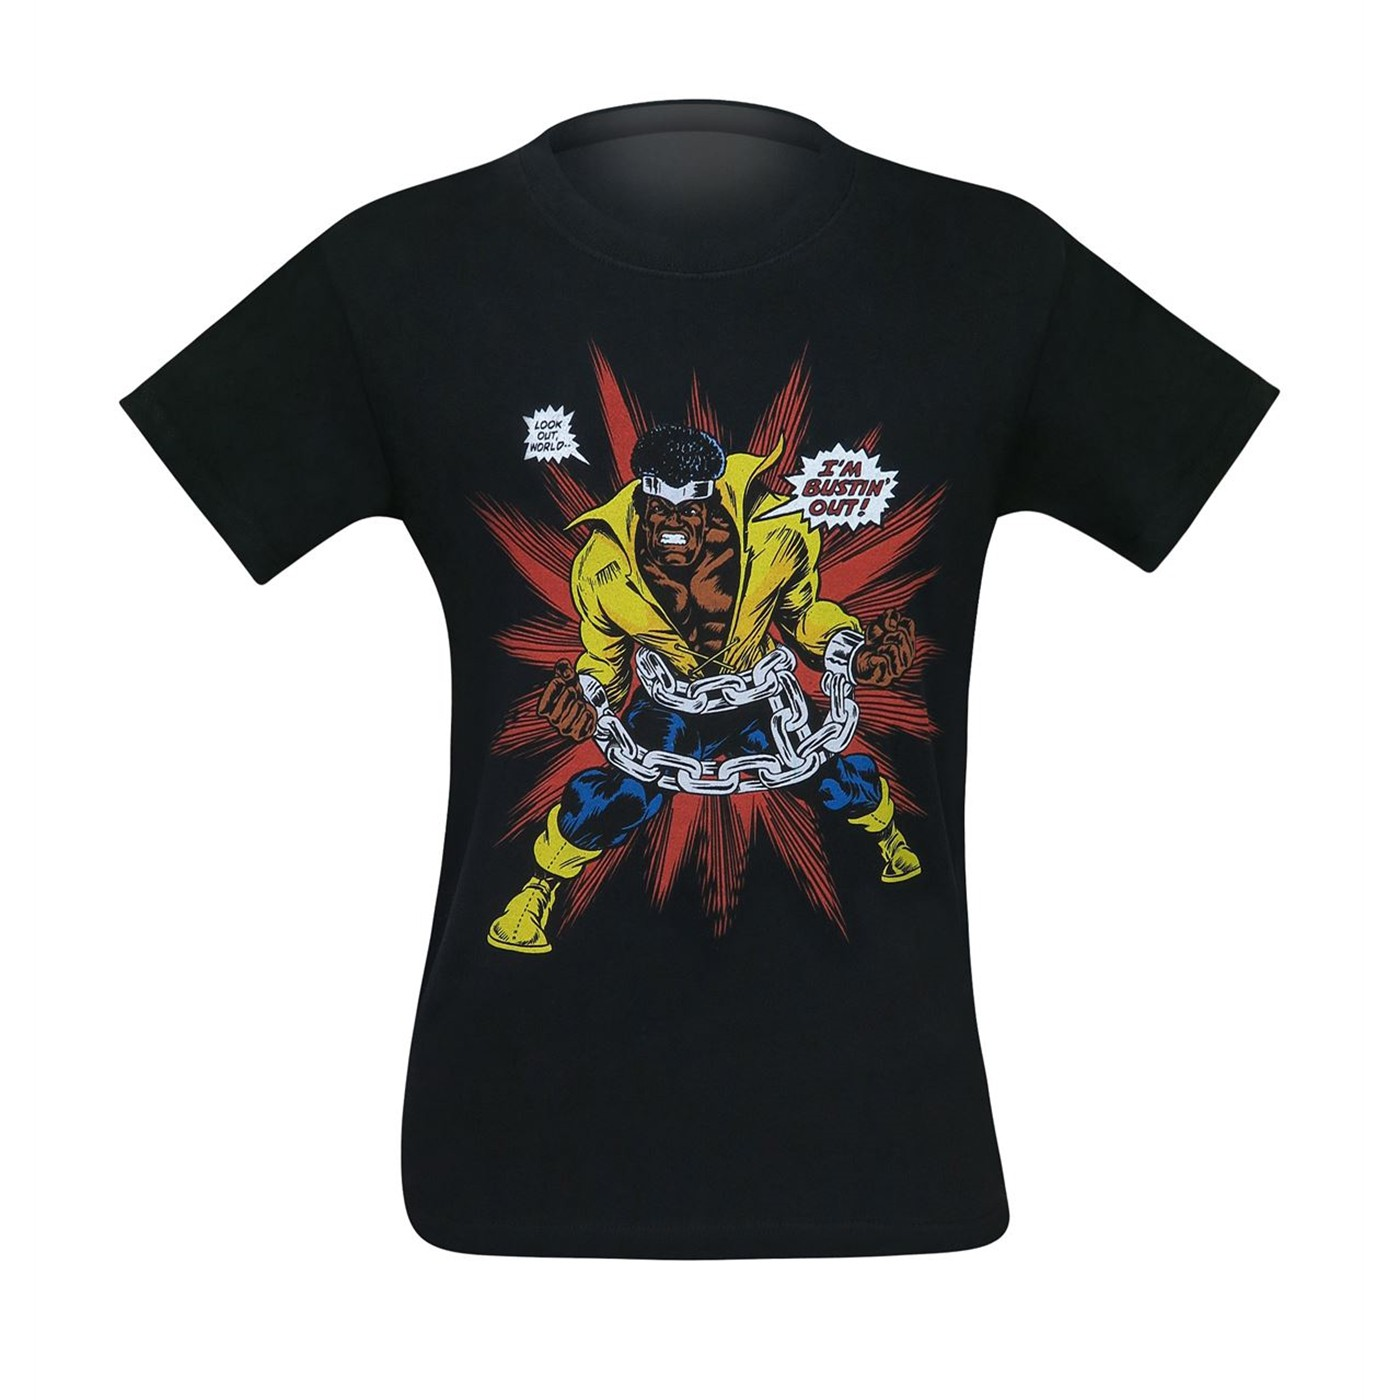 Luke Cage I'm Bustin' Out Bio Men's T-Shirt